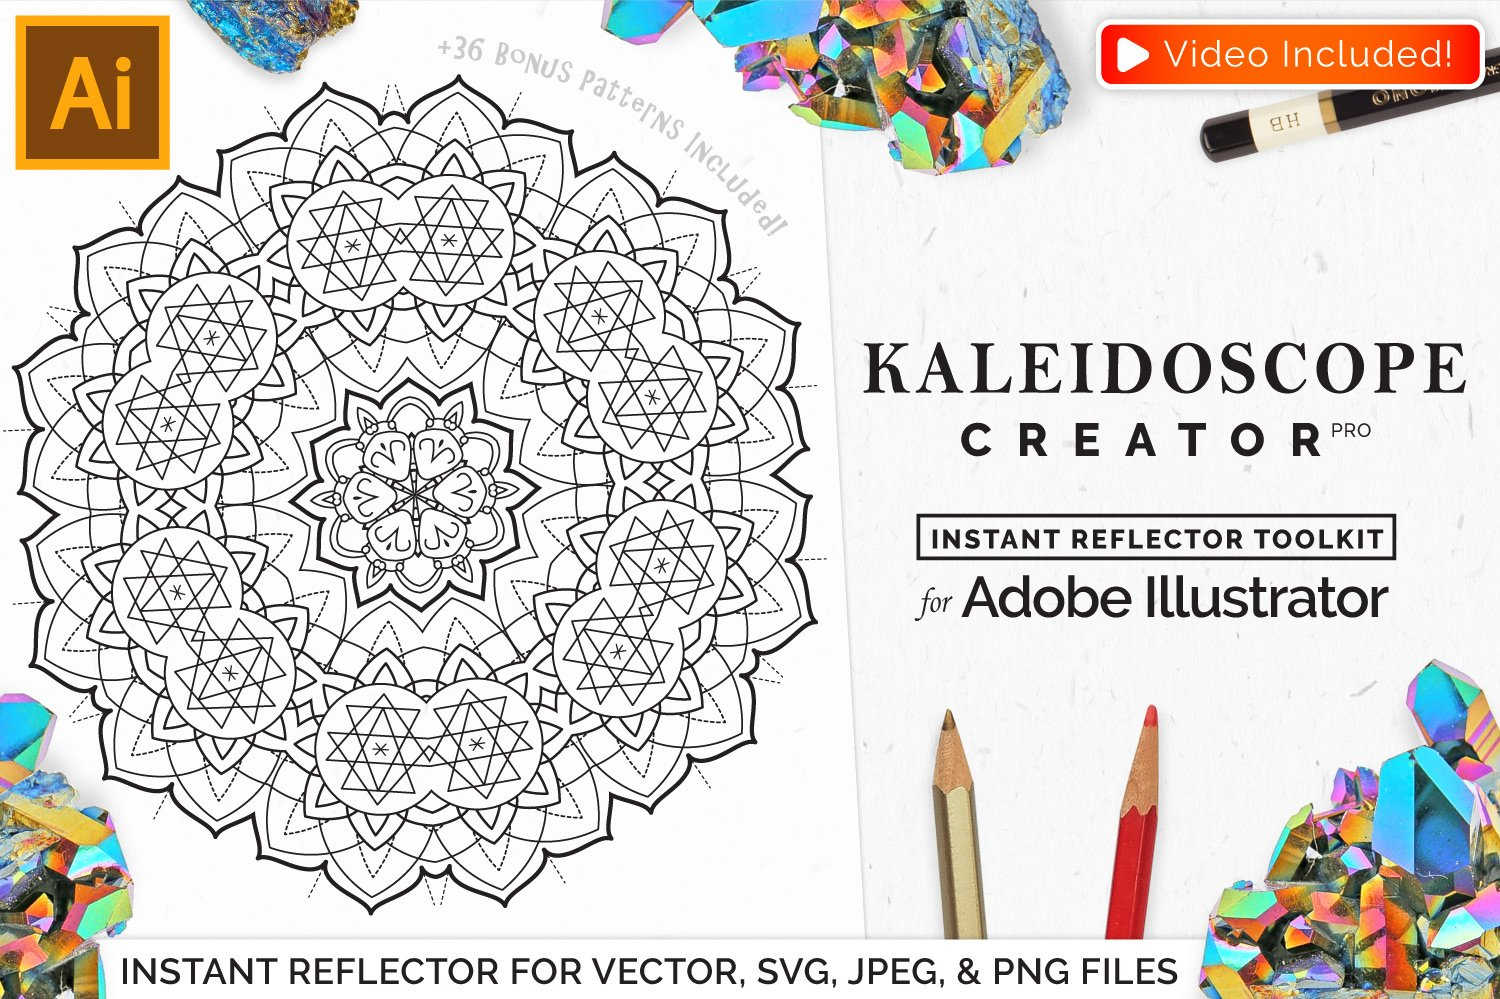 make a kaleidoscope and make a presentation in the class about how it works